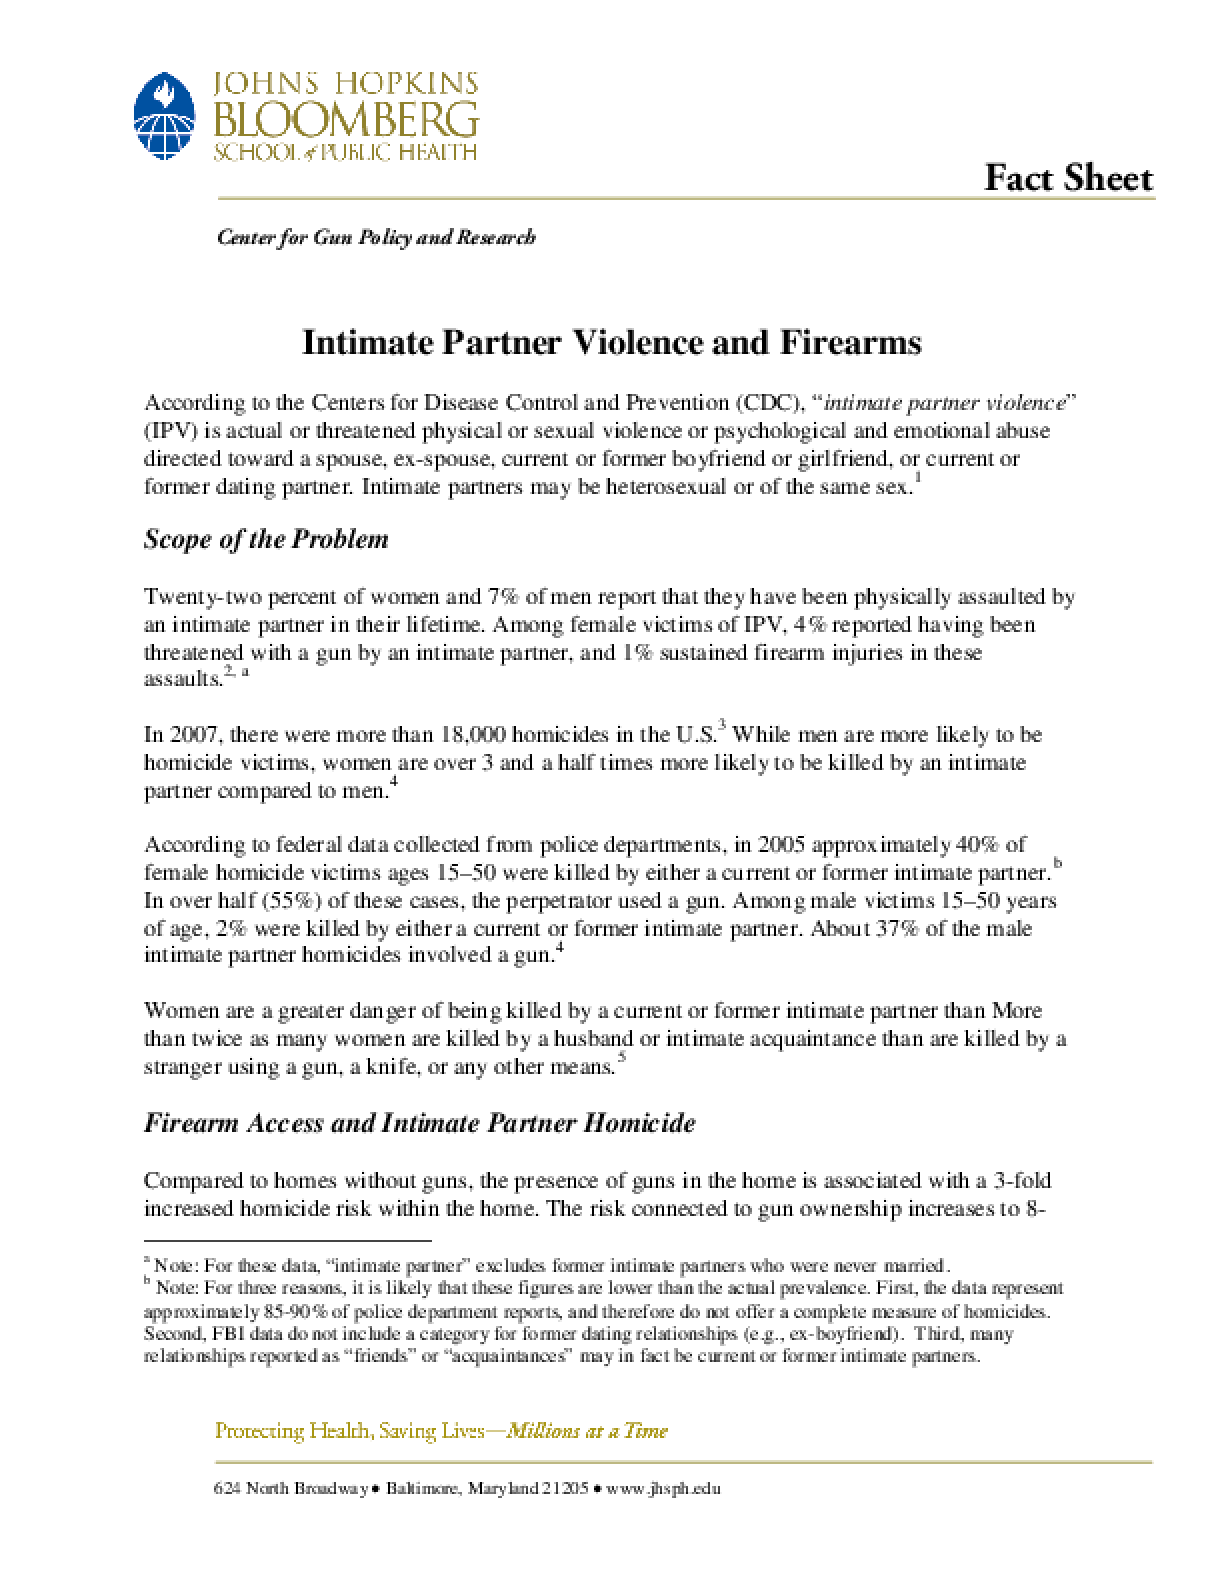 Intimate Partner Violence and Firearms